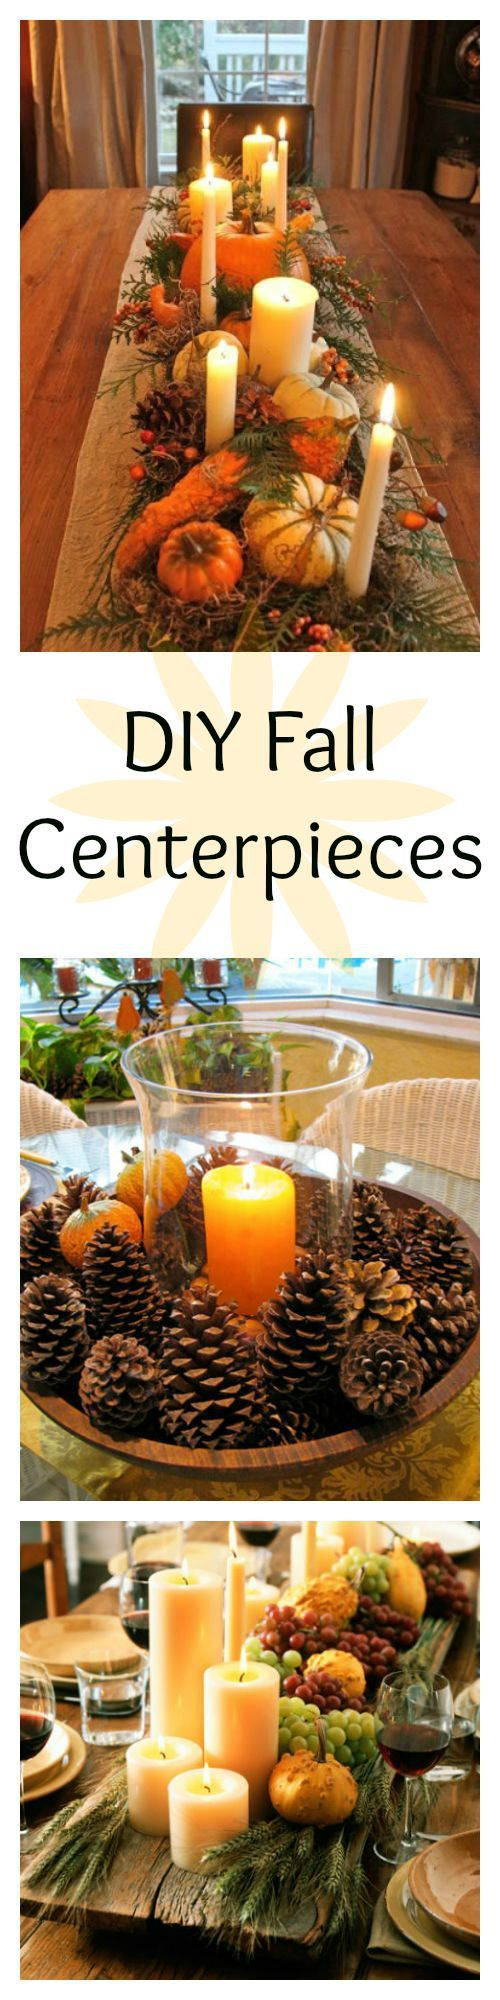 These DIY fall centerpieces and table decorations will make your home look more festive for autumn.